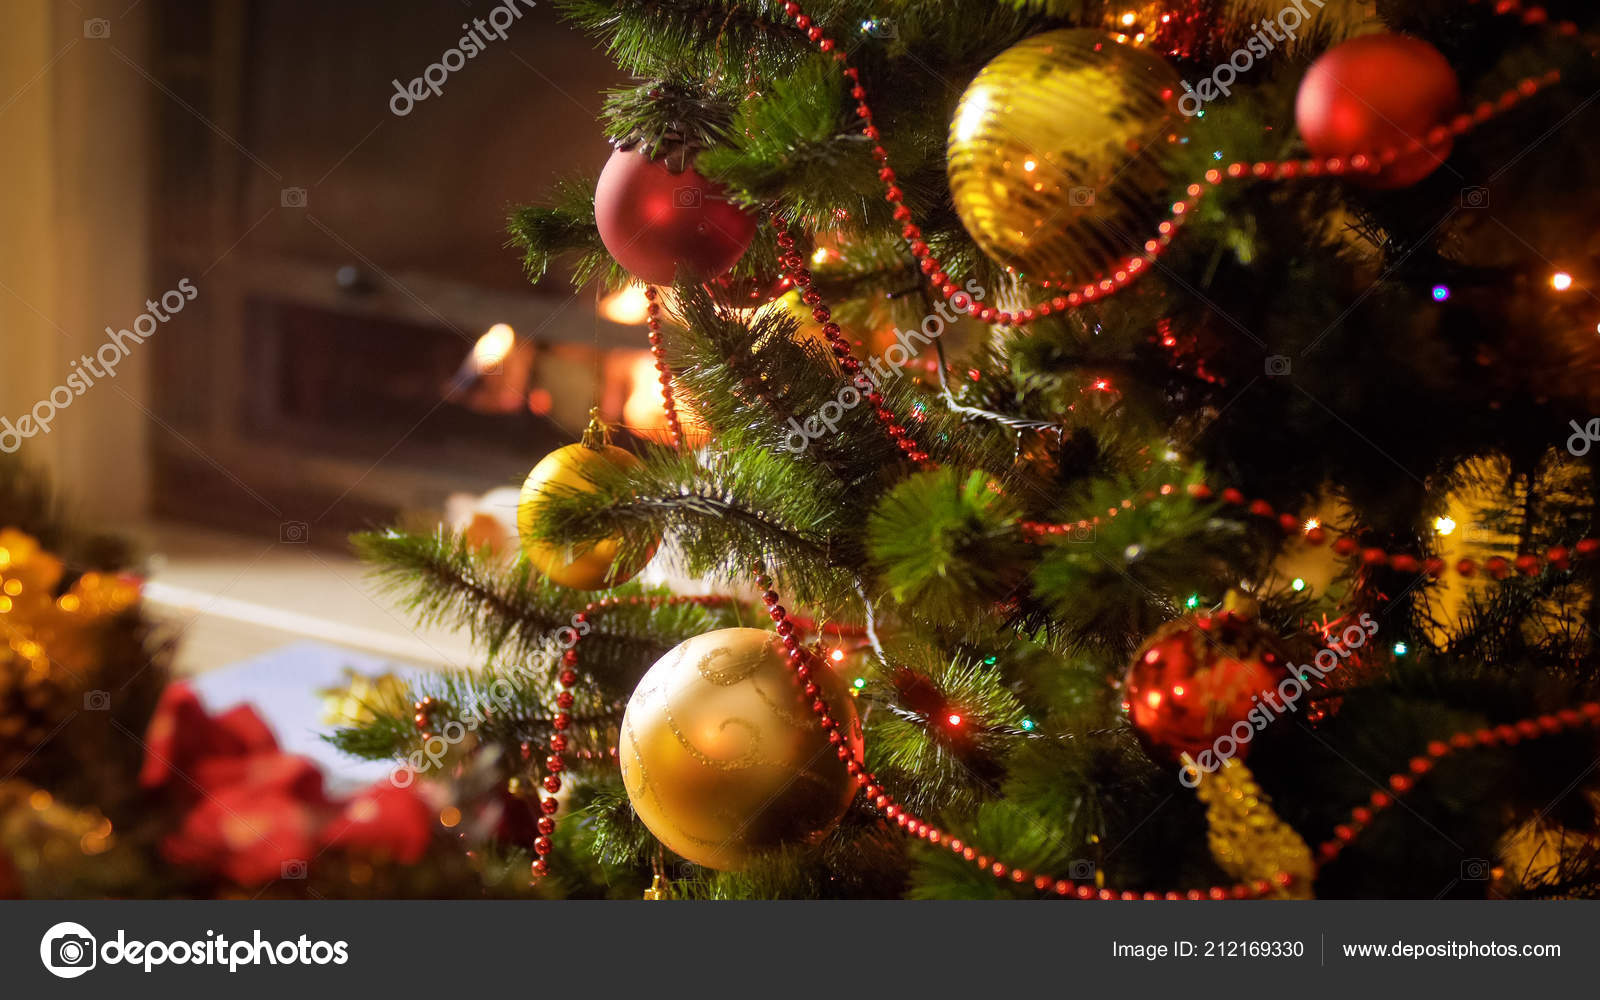 Burning Christmas Tree.Closeup Image Of Baubles And Colorful Lights On Christmas